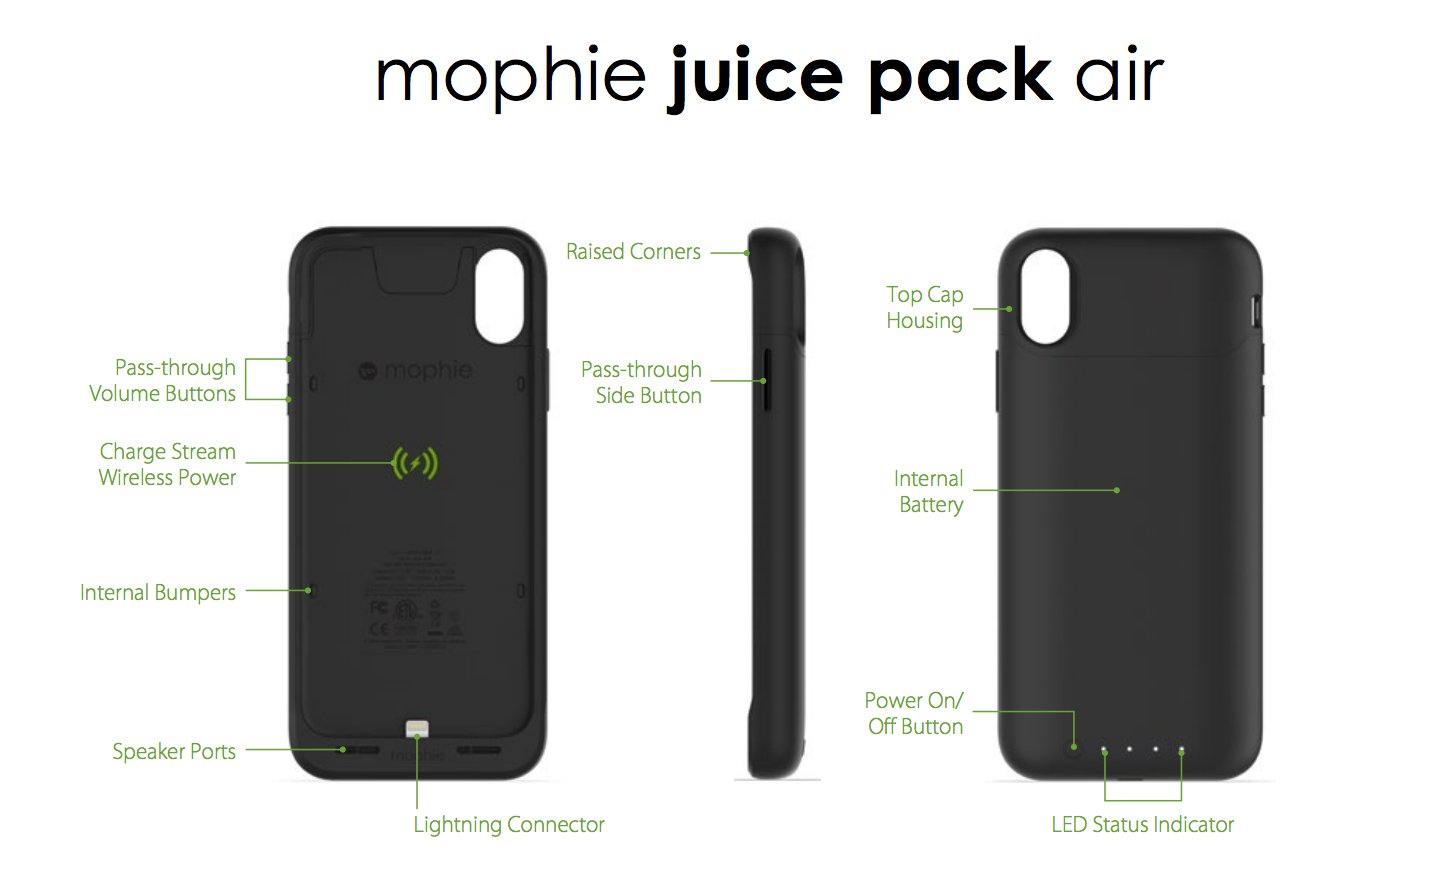 mophie-juice-pack-air-iphone-x-black-red-blue-all-in-function-forexengineer-store-malaysia-mophie-authorised-retailer